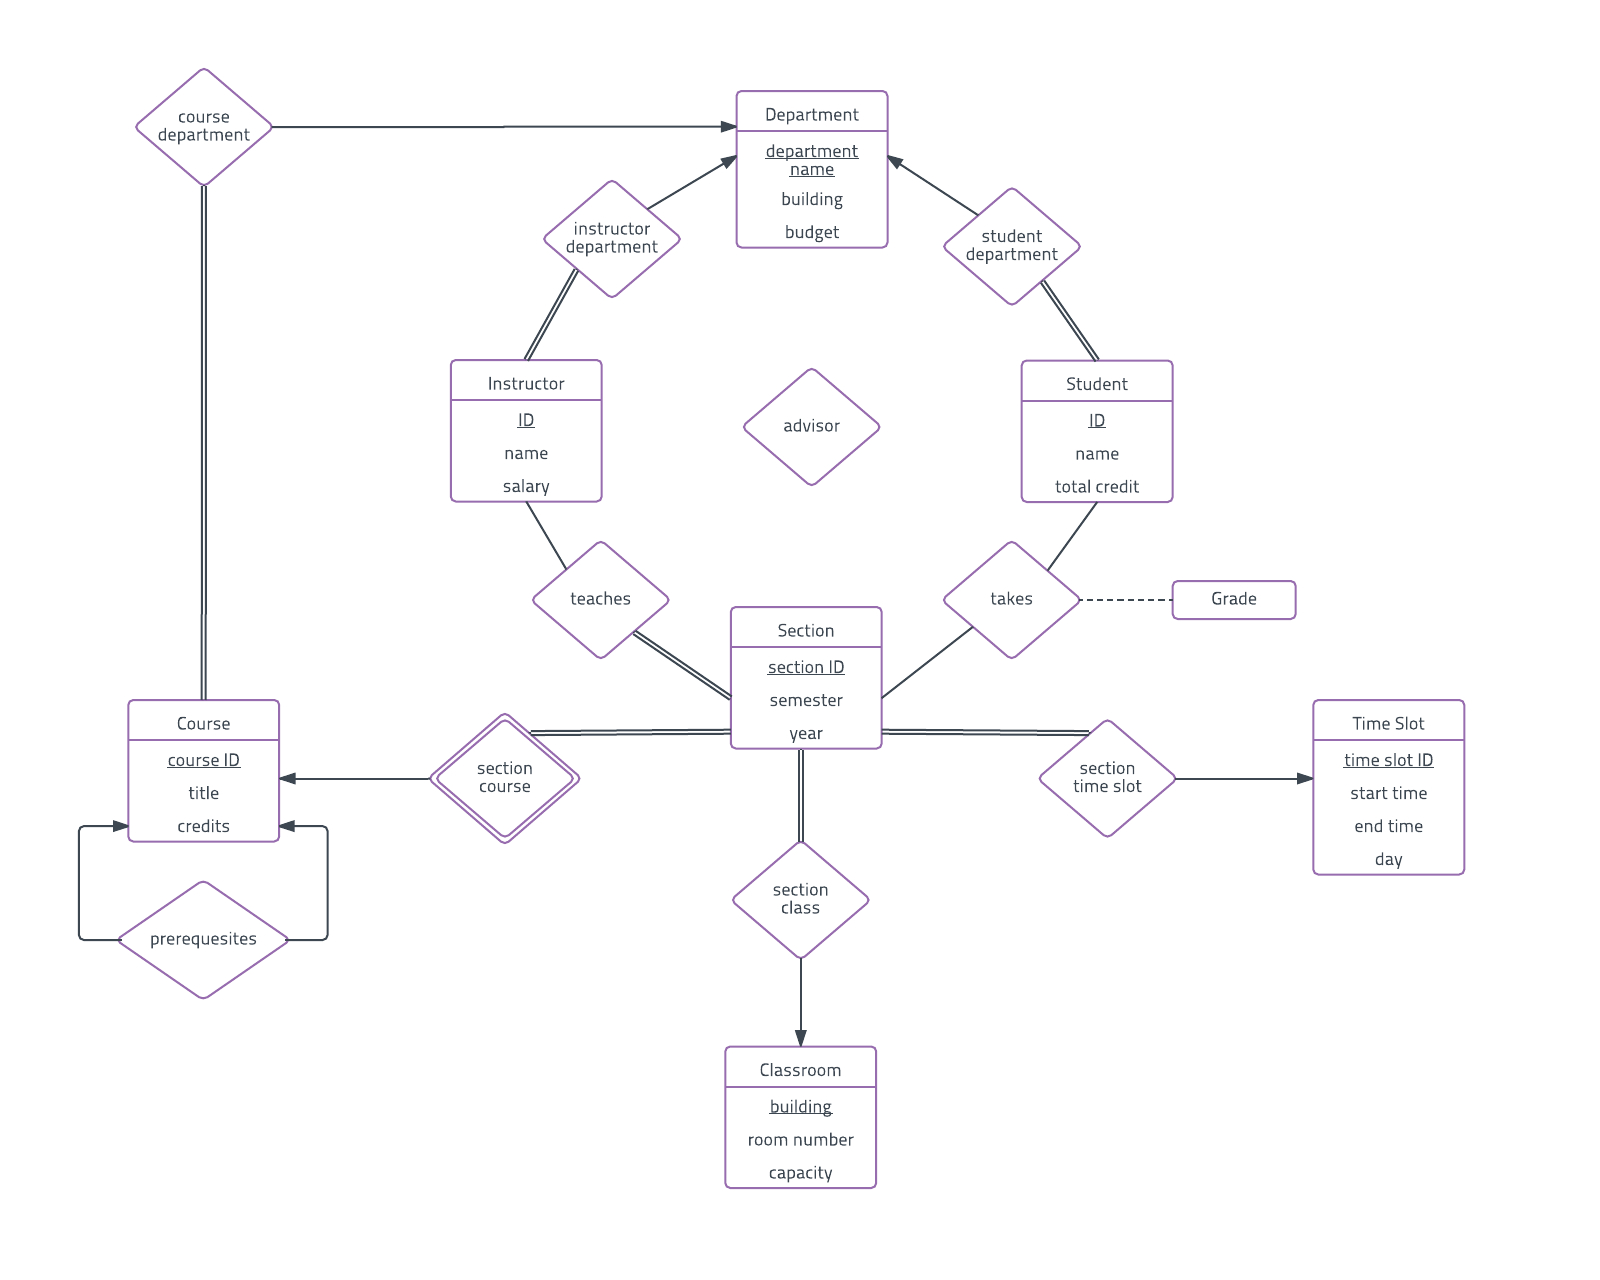 Er Diagram Examples And Templates | Lucidchart regarding Ed Diagram